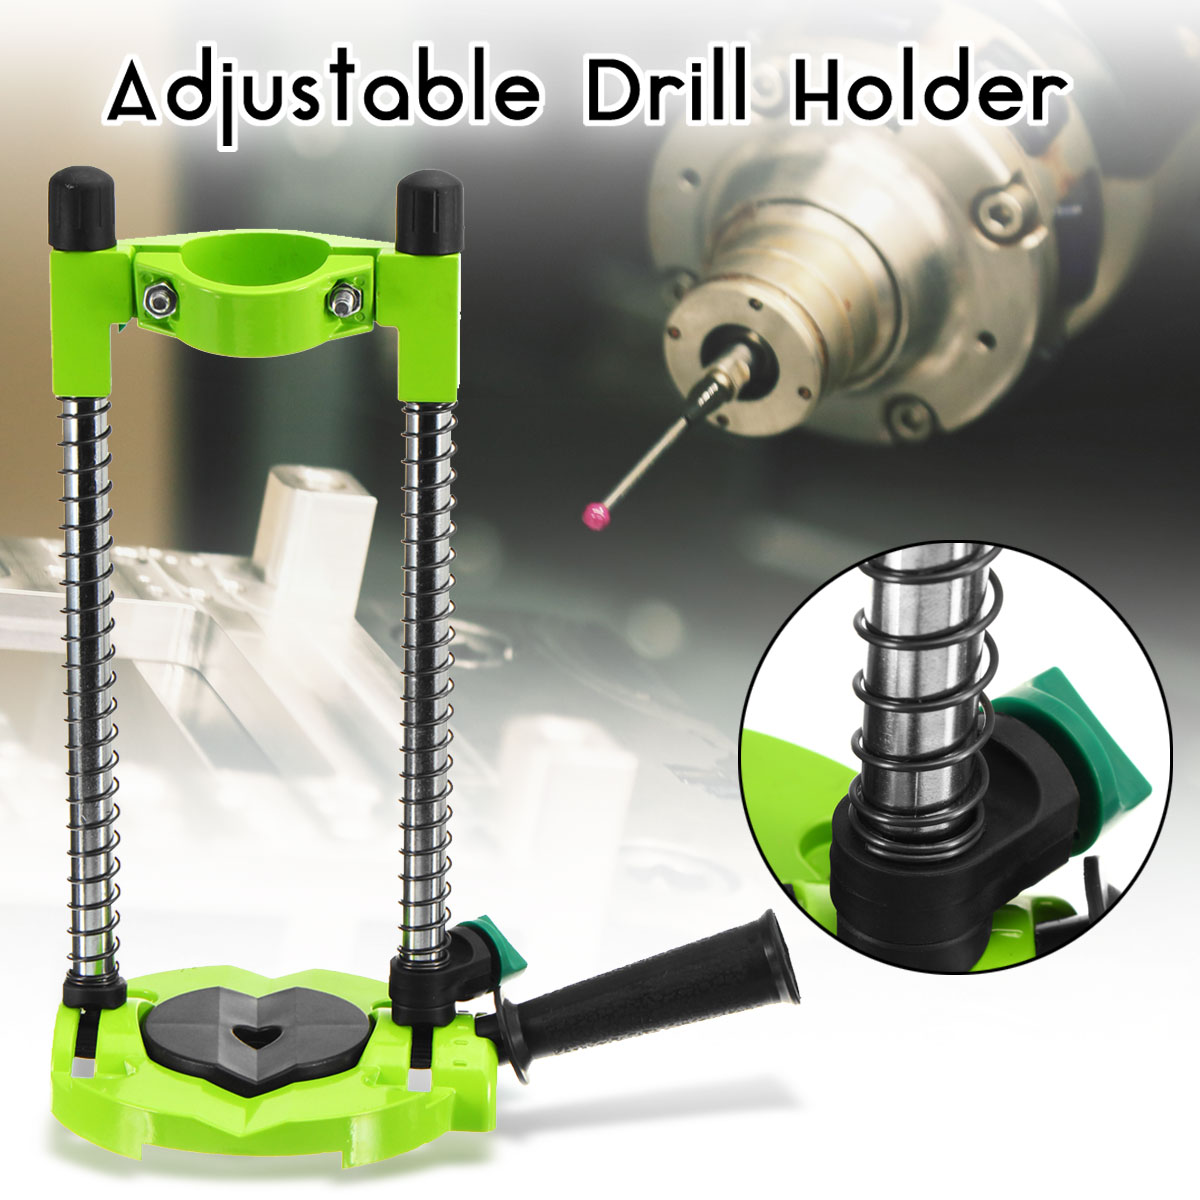 Precision Drill Guide Pipe Drill Holder Stand Drilling Guide with Adjustable Angle and Removeable Handle DIY Woodworking Tool drill buddy cordless dust collector with laser level and bubble vial diy tool new